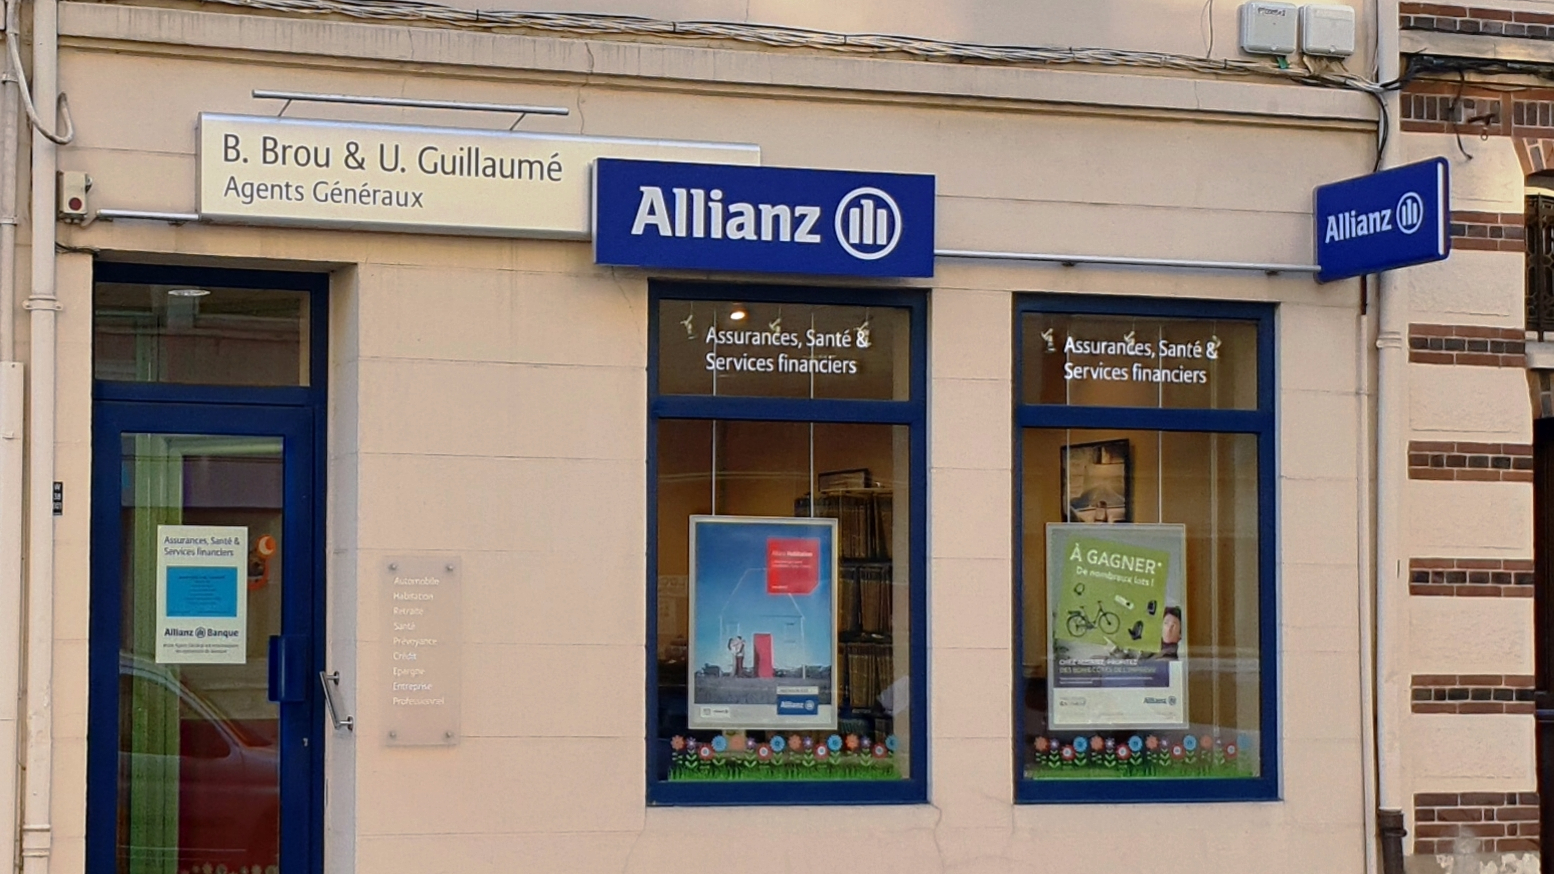 Allianz Chartres - GUILLAUME & BROU